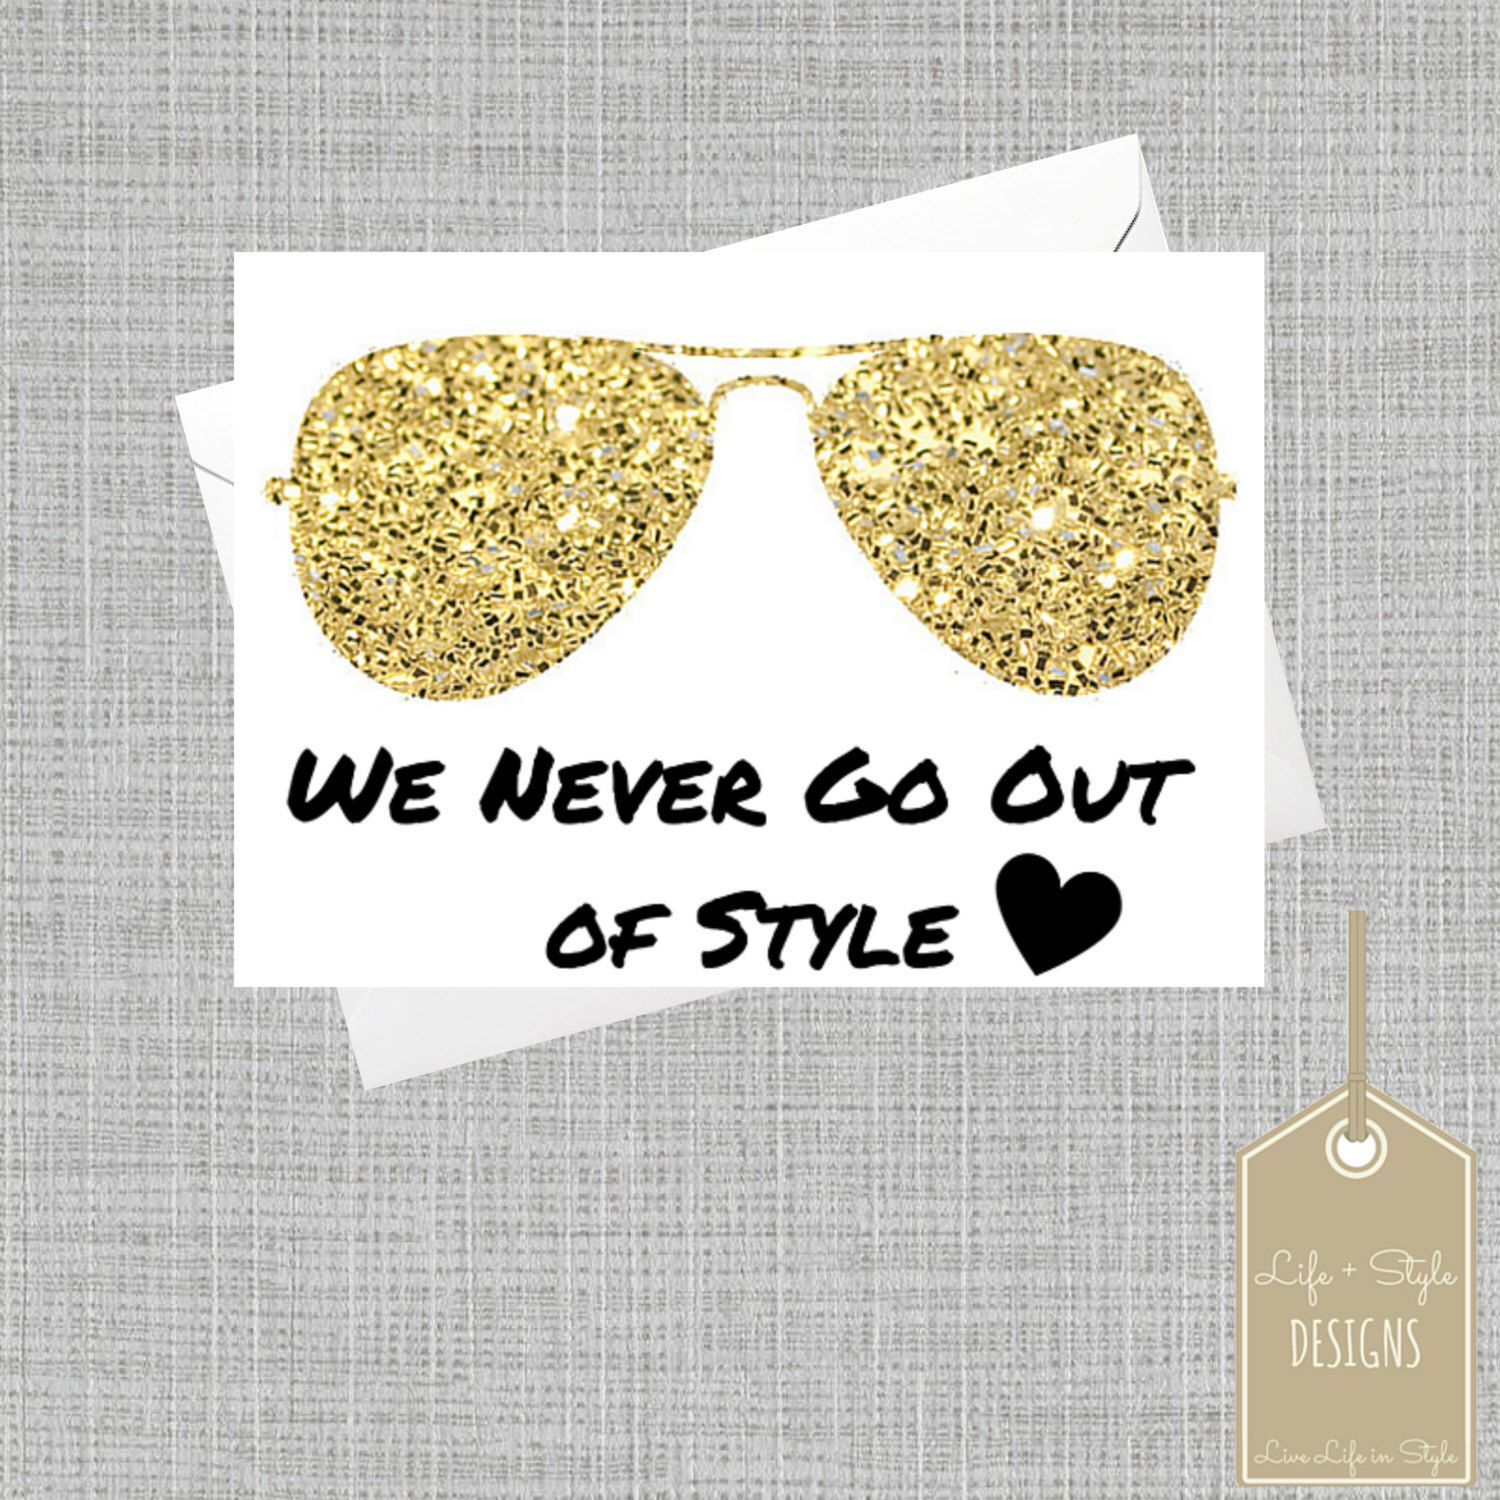 Gold Taylor Swift Card Never Go Out Of Style Cardgold Aviators